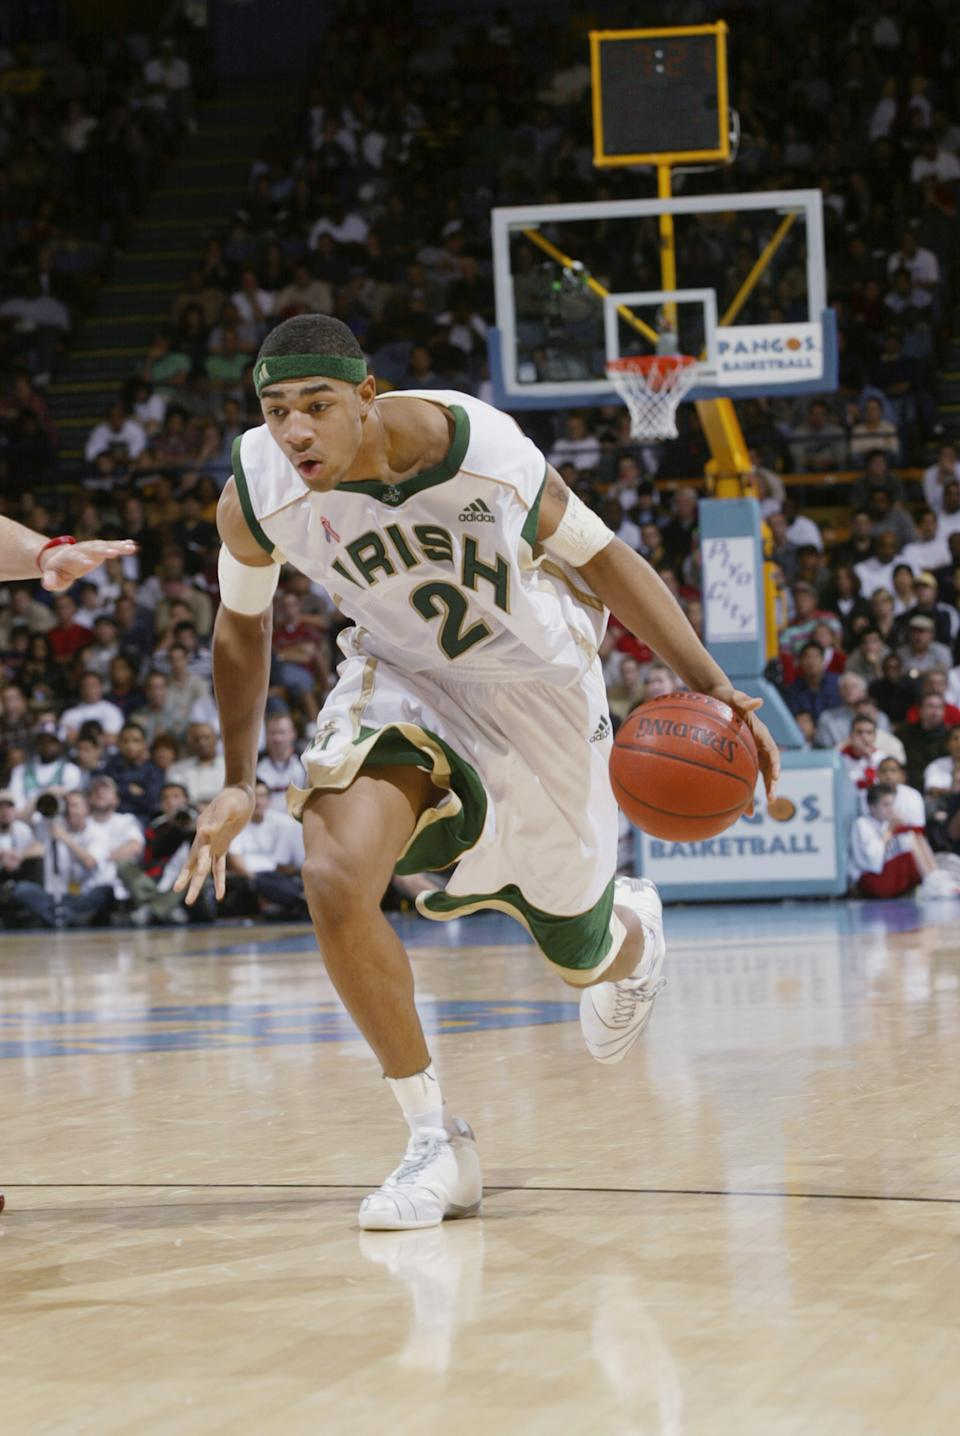 Romeo Travis #24 of St. Vincent-St. Mary High School moves the ball forward against Mater Dei High School during the Ninth Pangos Dream Classic at Pauley Pavilion on the UCLA campus on January 4, 2003 in Los Angeles, California.  St. Vincent-St. Mary won 64-58.  (Photo by Stephen Dunn/Getty Images)